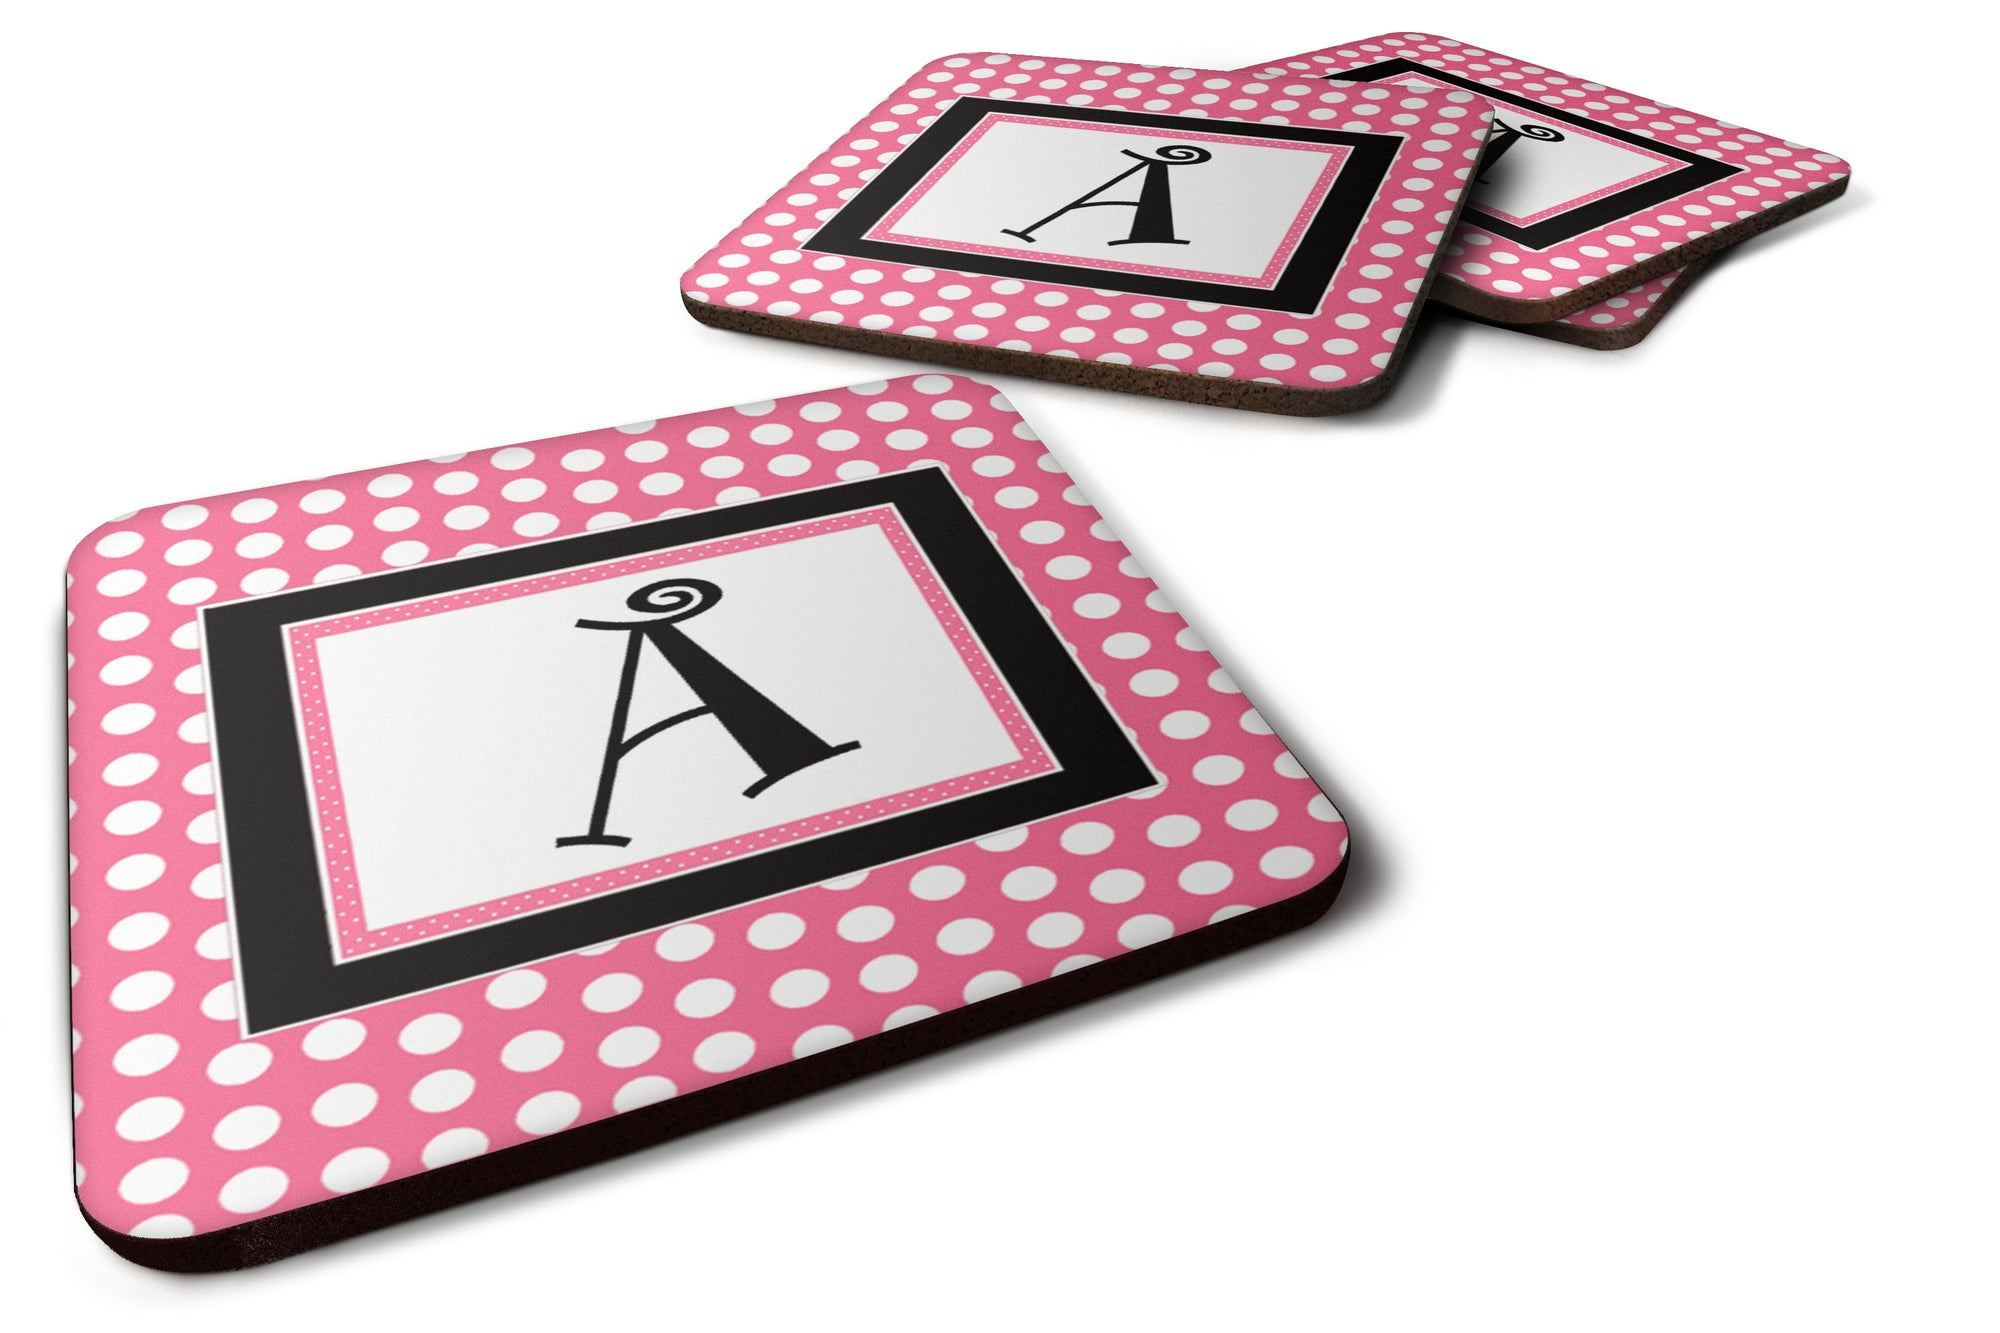 Set of 4 Monogram - Pink Black Polka Dots Foam Coasters Initial Letter A by Caroline's Treasures